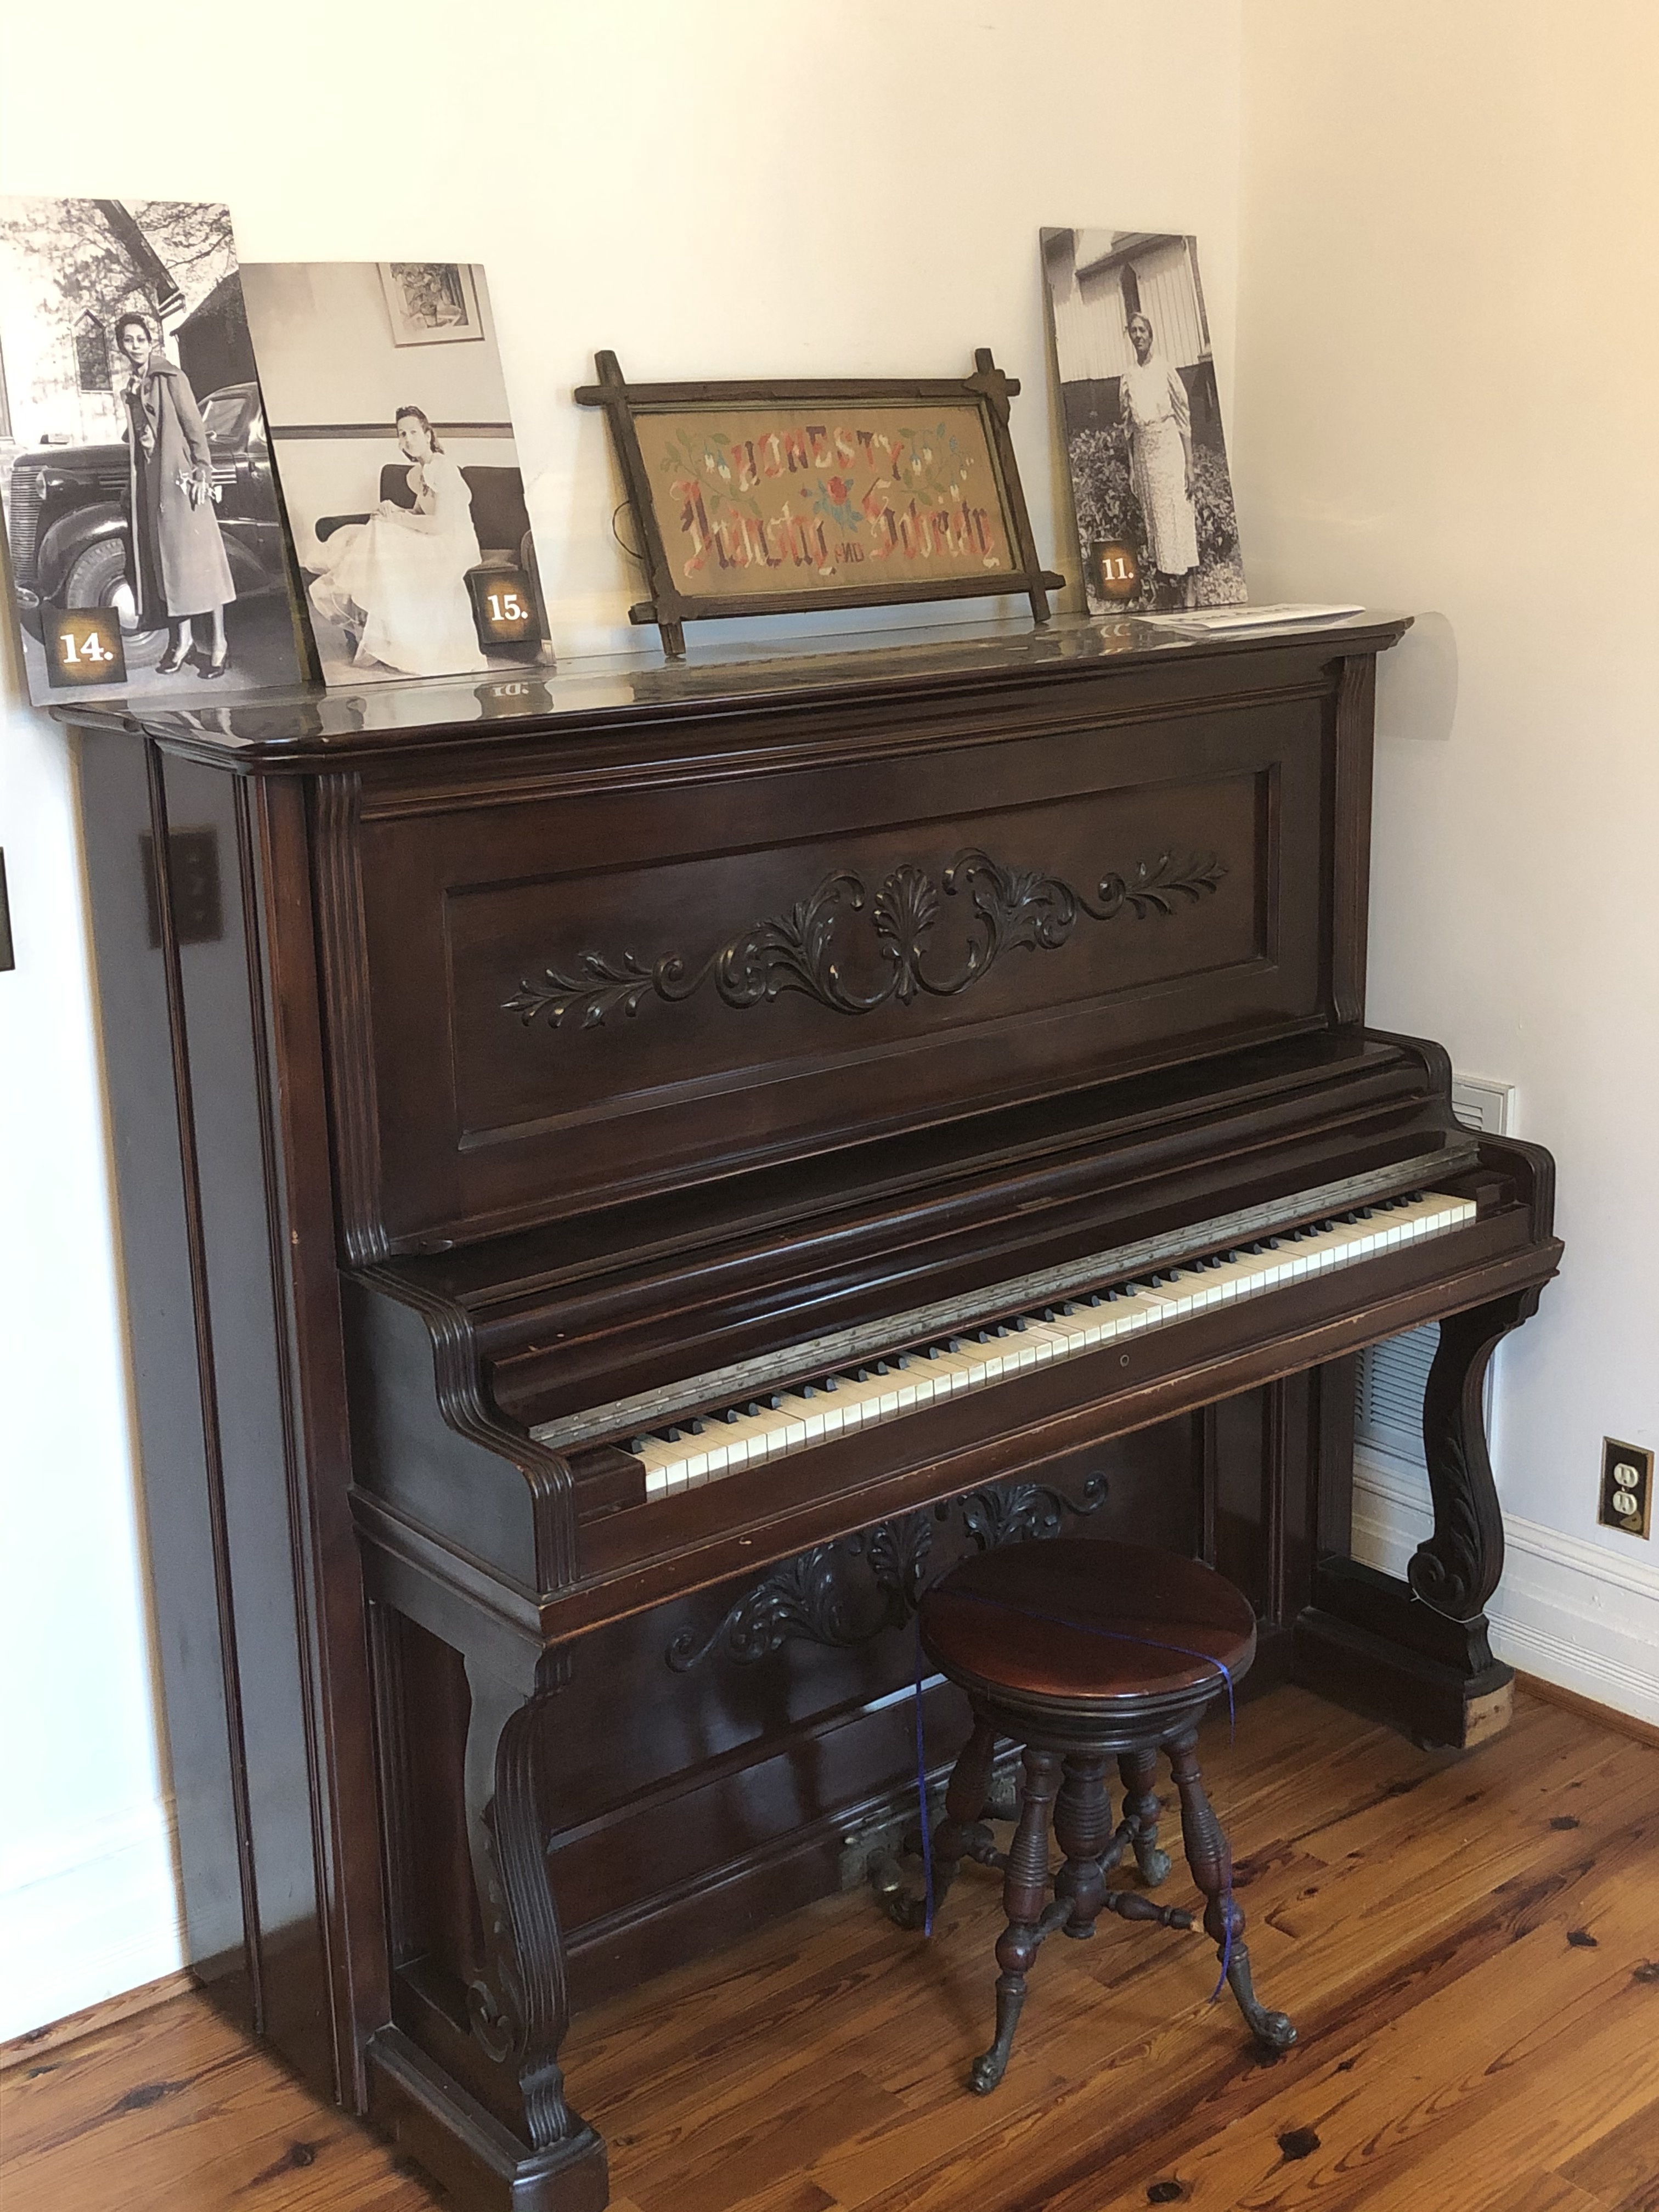 An 1860's era piano the Dr. Pope purchased from Chicago. Pope's second wife, Delia Haywood Philips Pope, played the piano frequently.